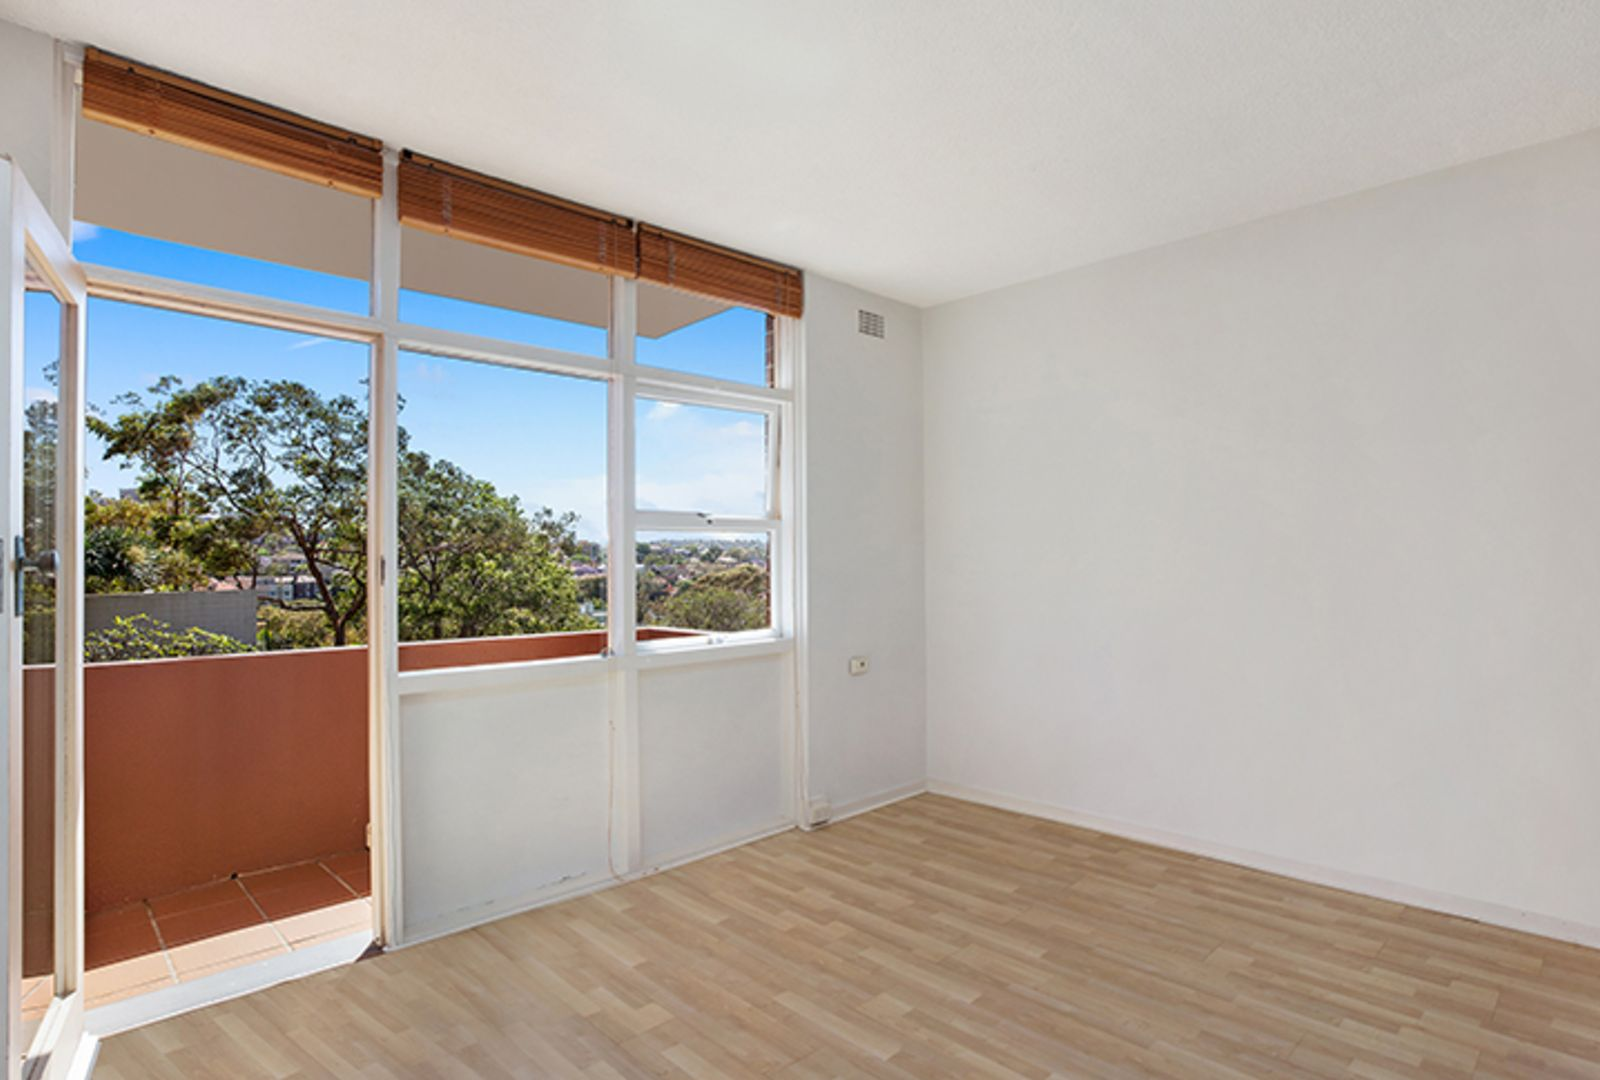 27/59 Whaling Road, North Sydney NSW 2060, Image 2